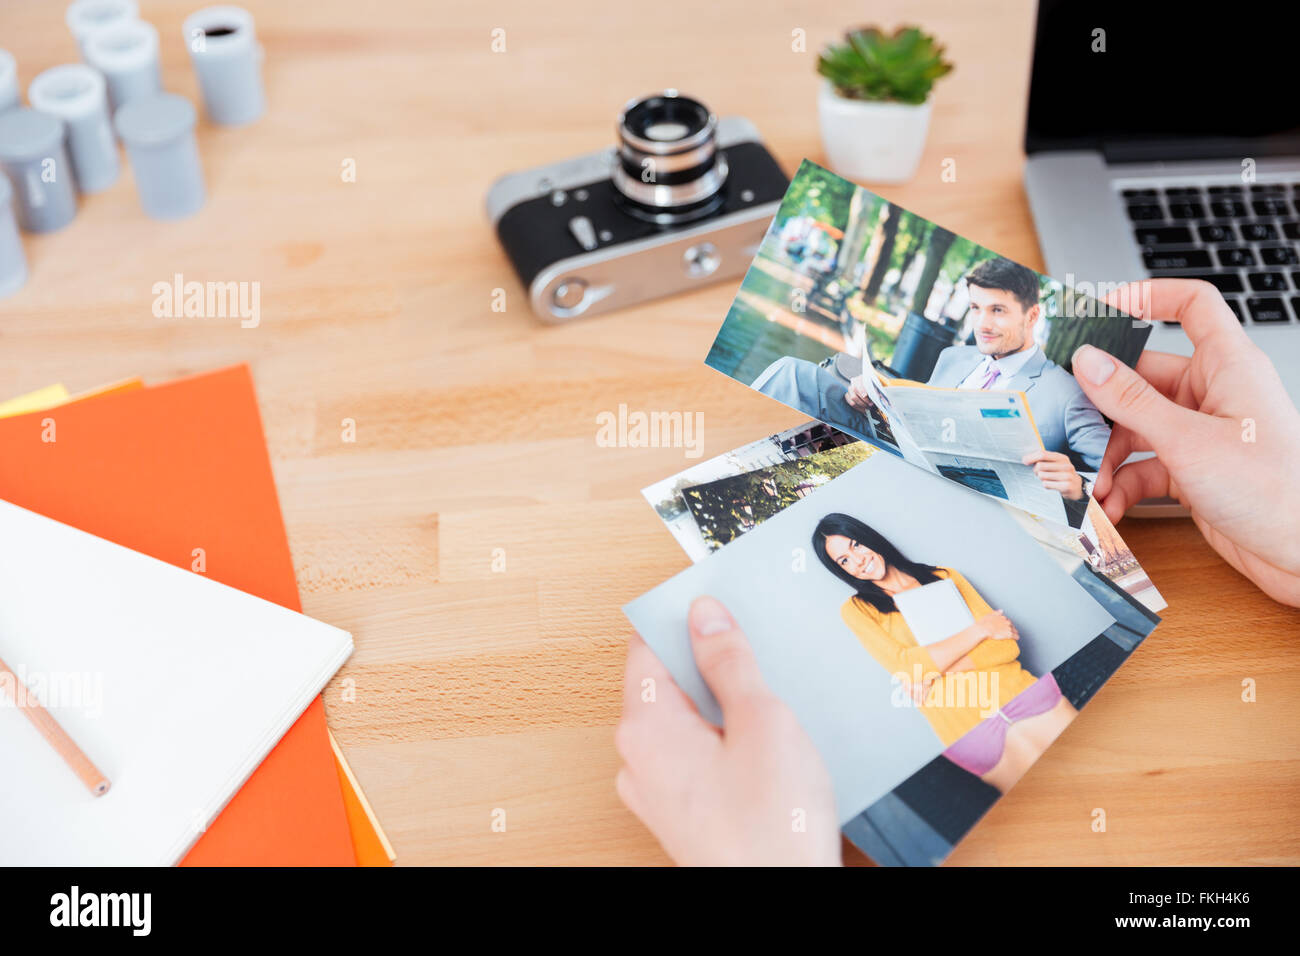 Top view of photos of models holded by young woman photographer at the table Stock Photo